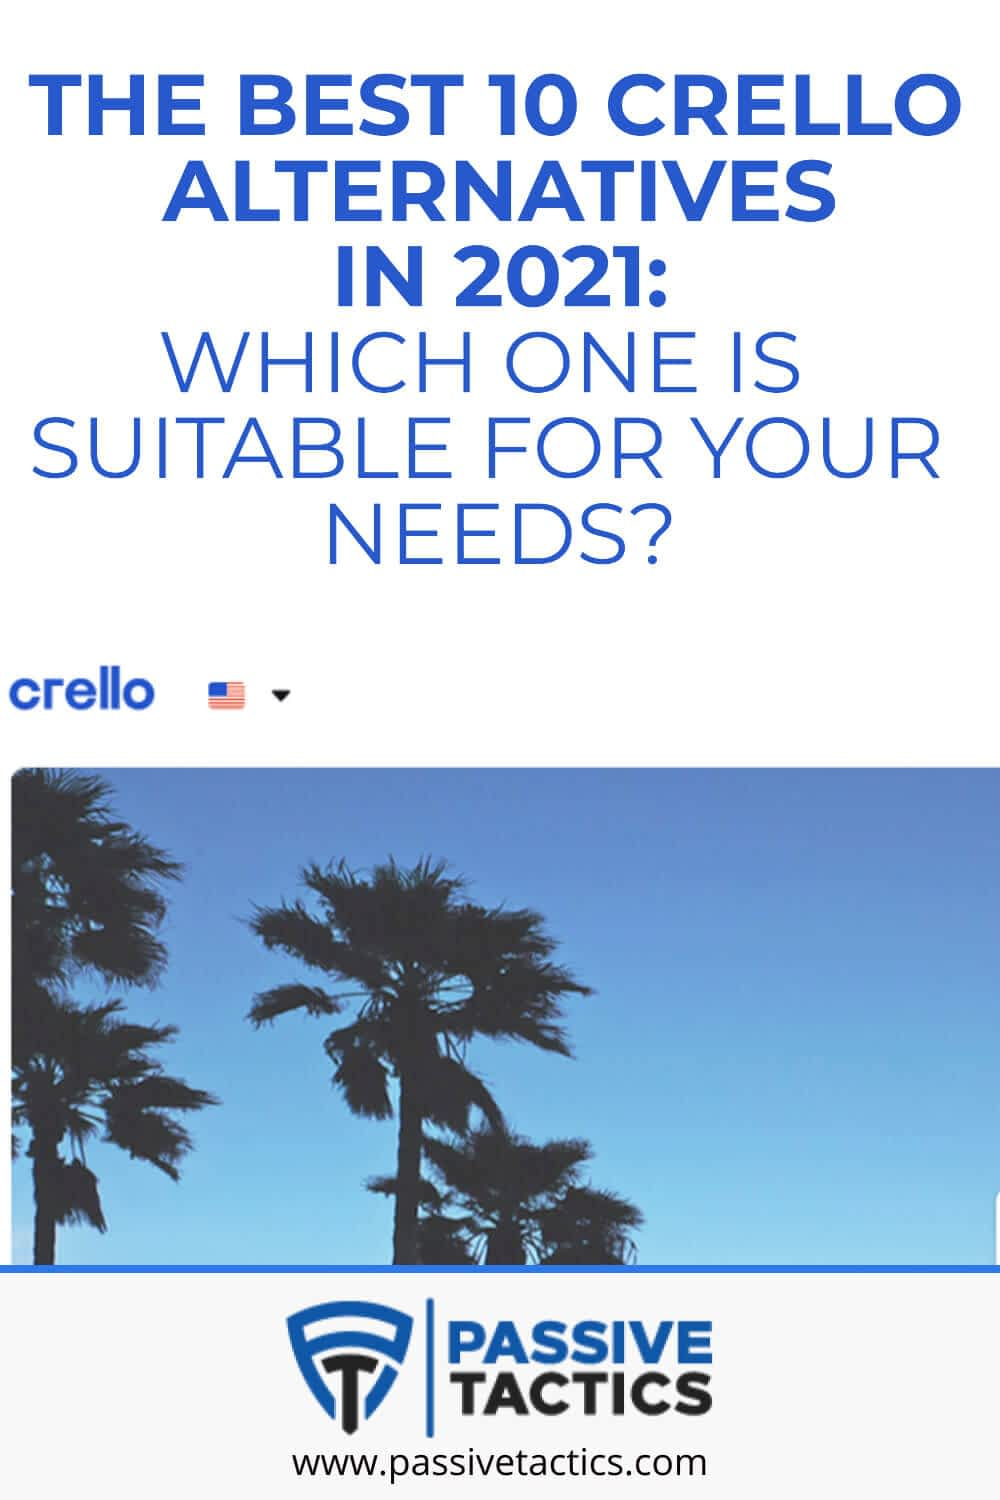 The 10 Best Crello Alternatives To Choose In 2021!